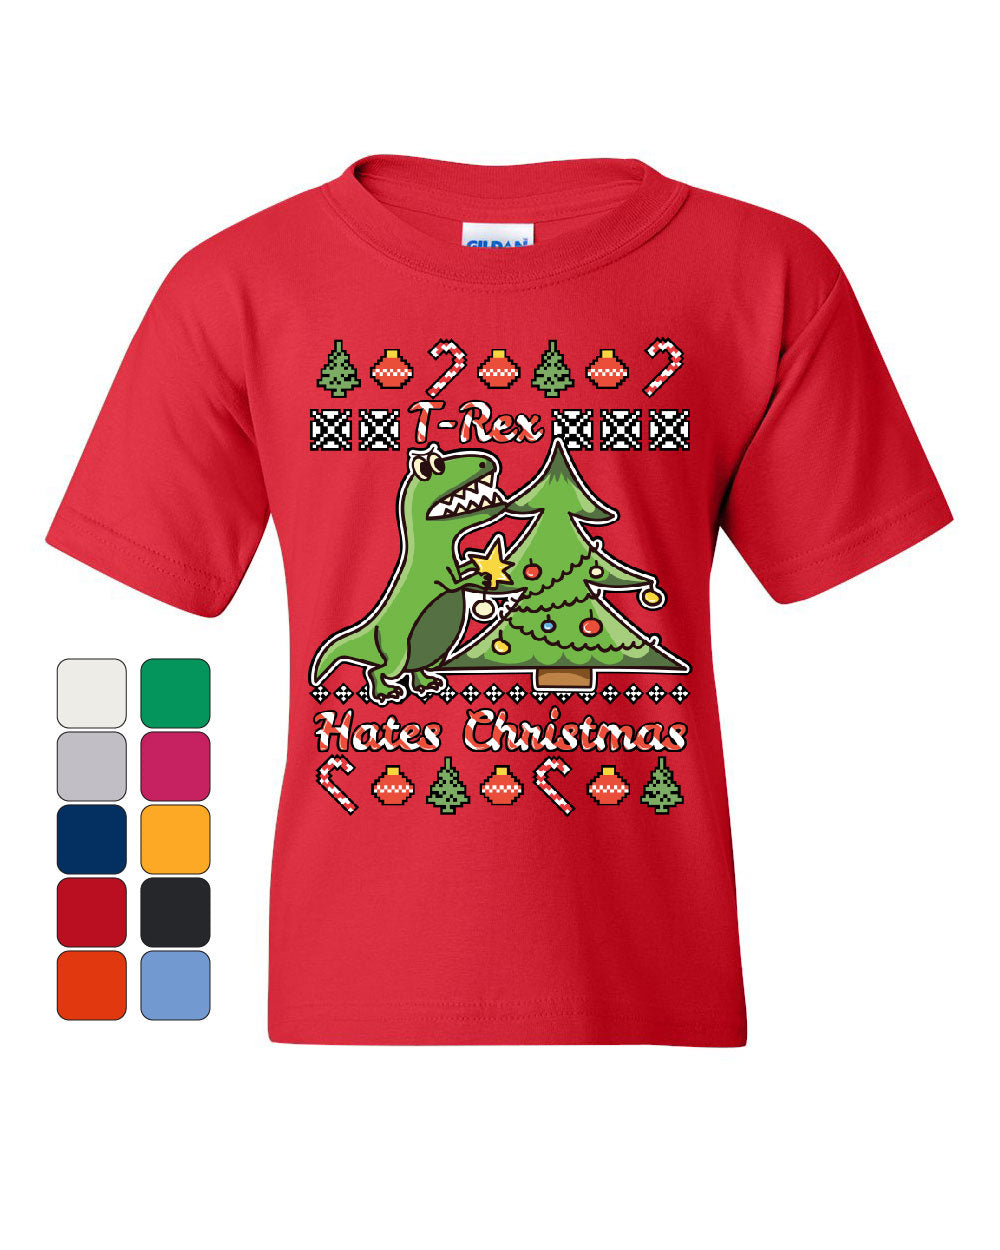 T-Rex Hates Christmas Youth T-Shirt Funny Xmas Ugly Sweater Dinosaur Kids Tee